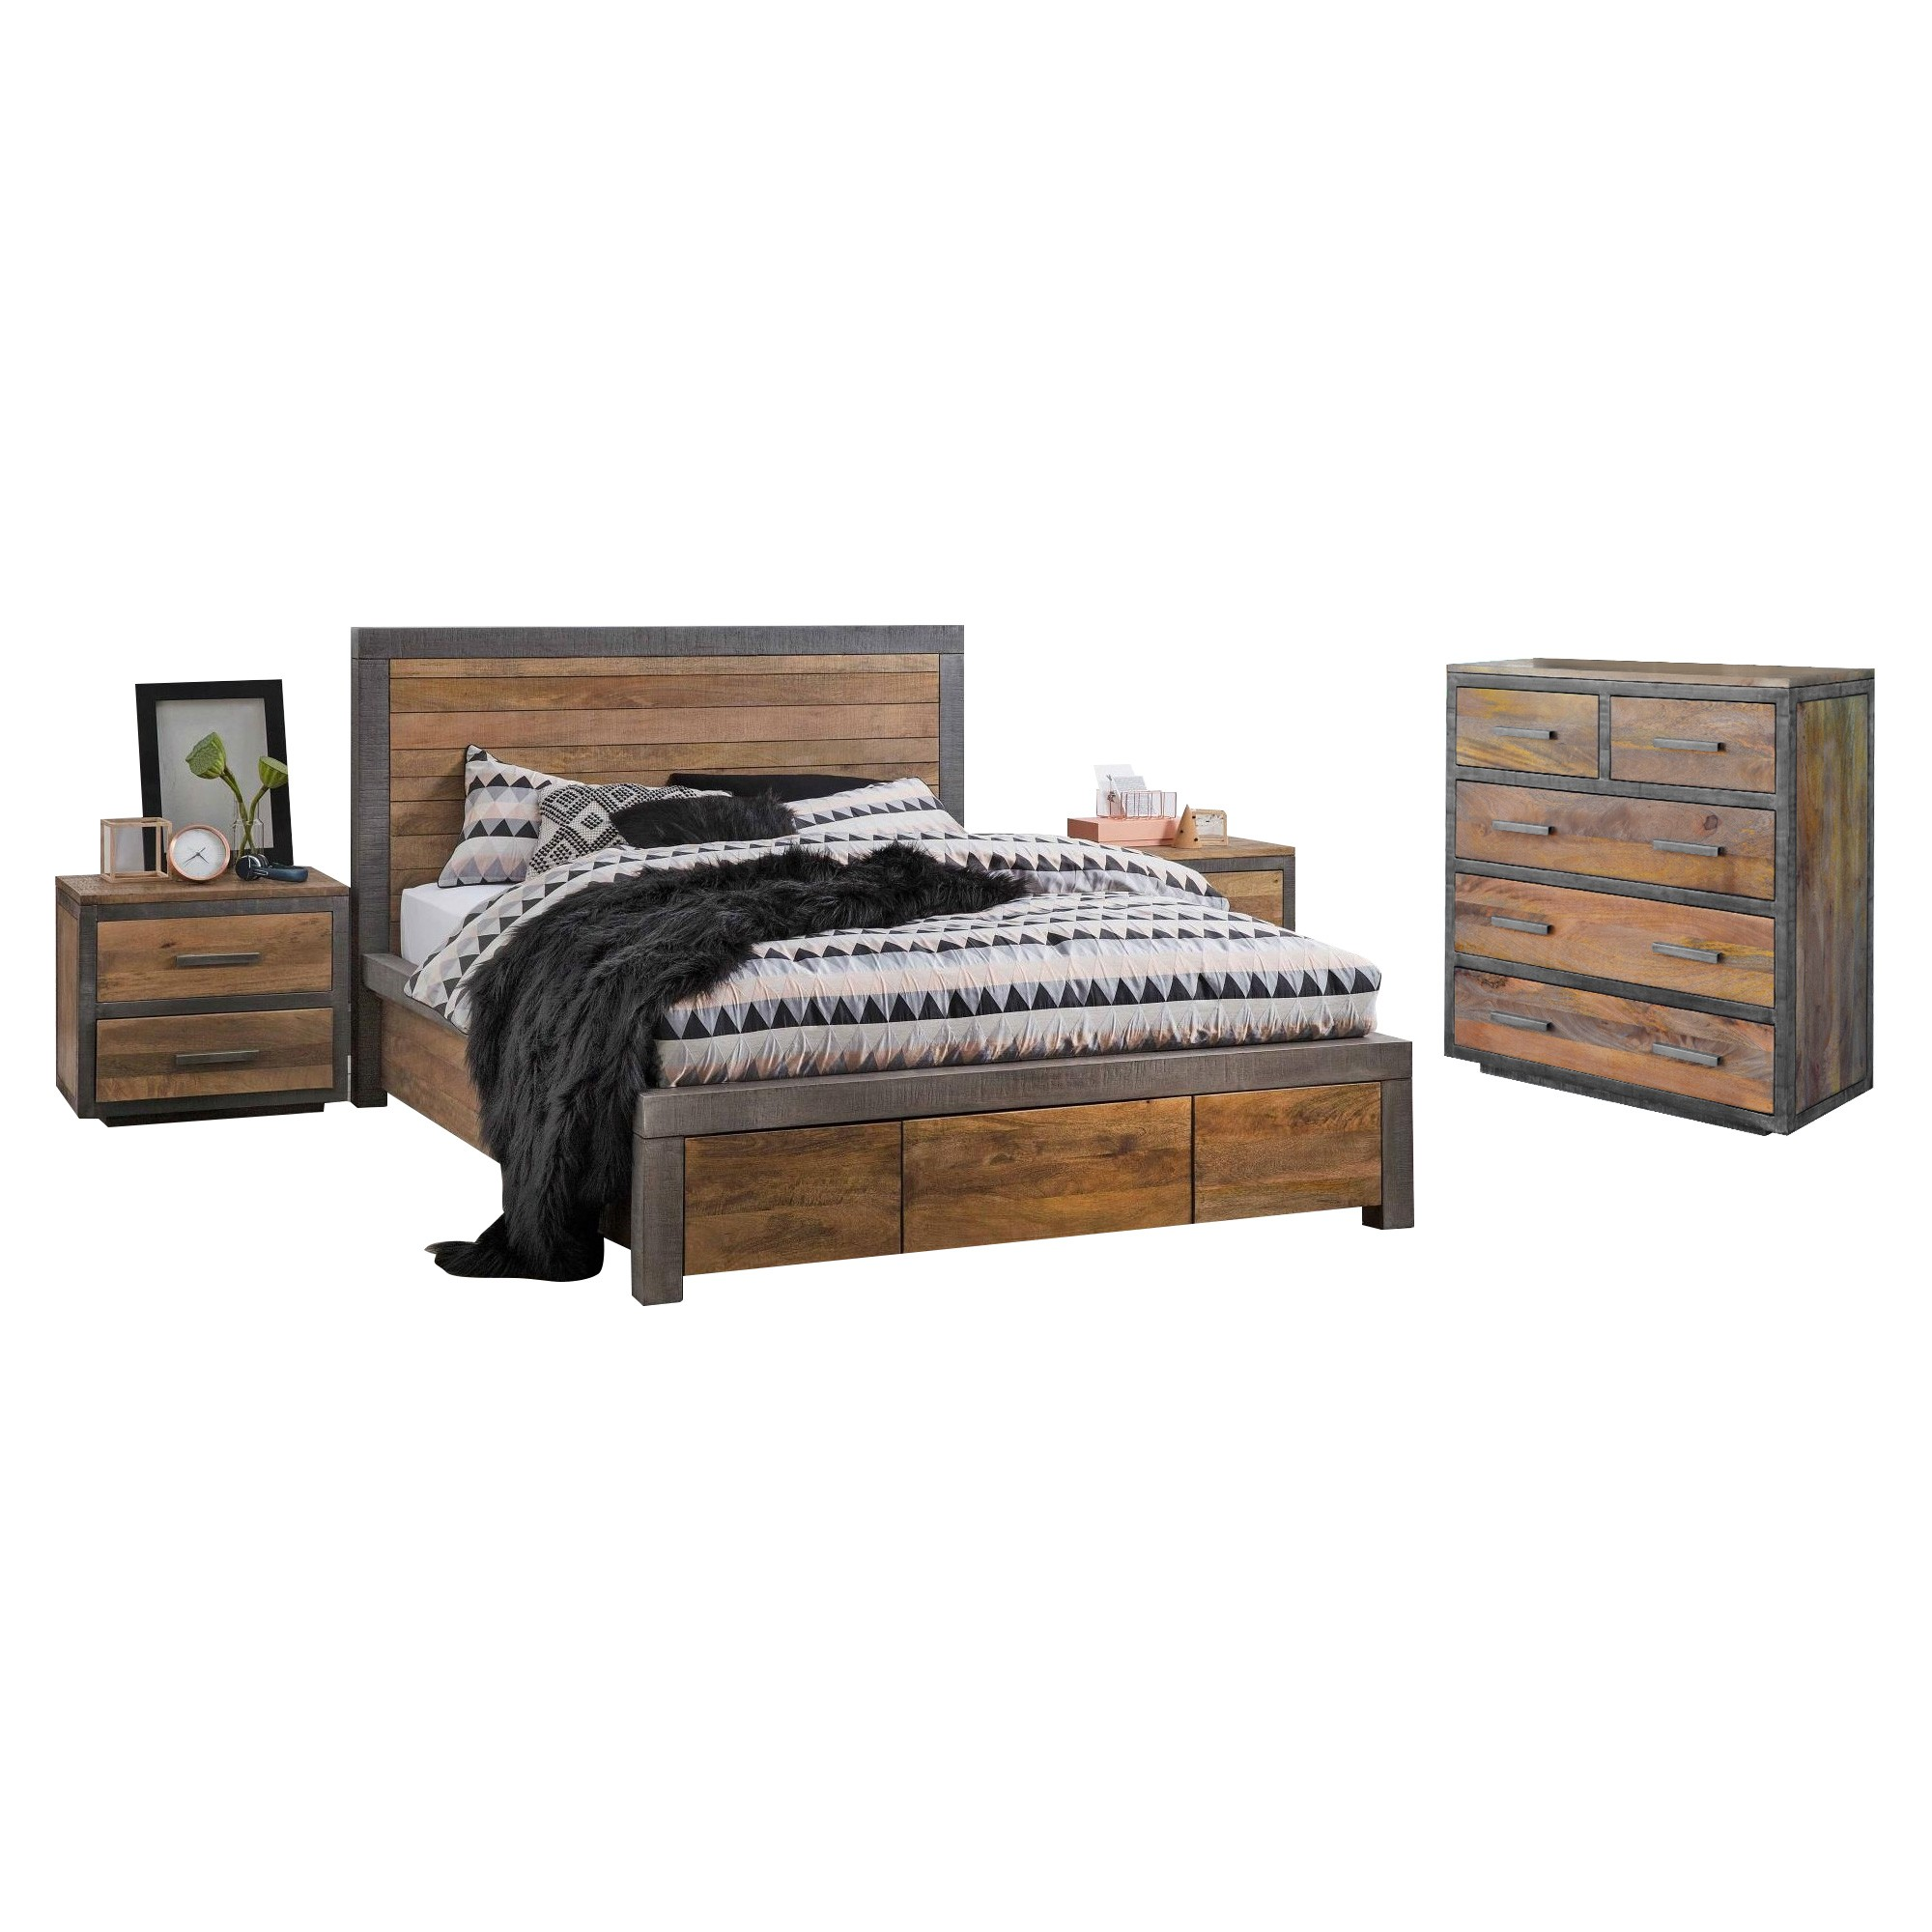 Solon 4 Piece Mango Wood Bedroom Tallboy Suite, Queen